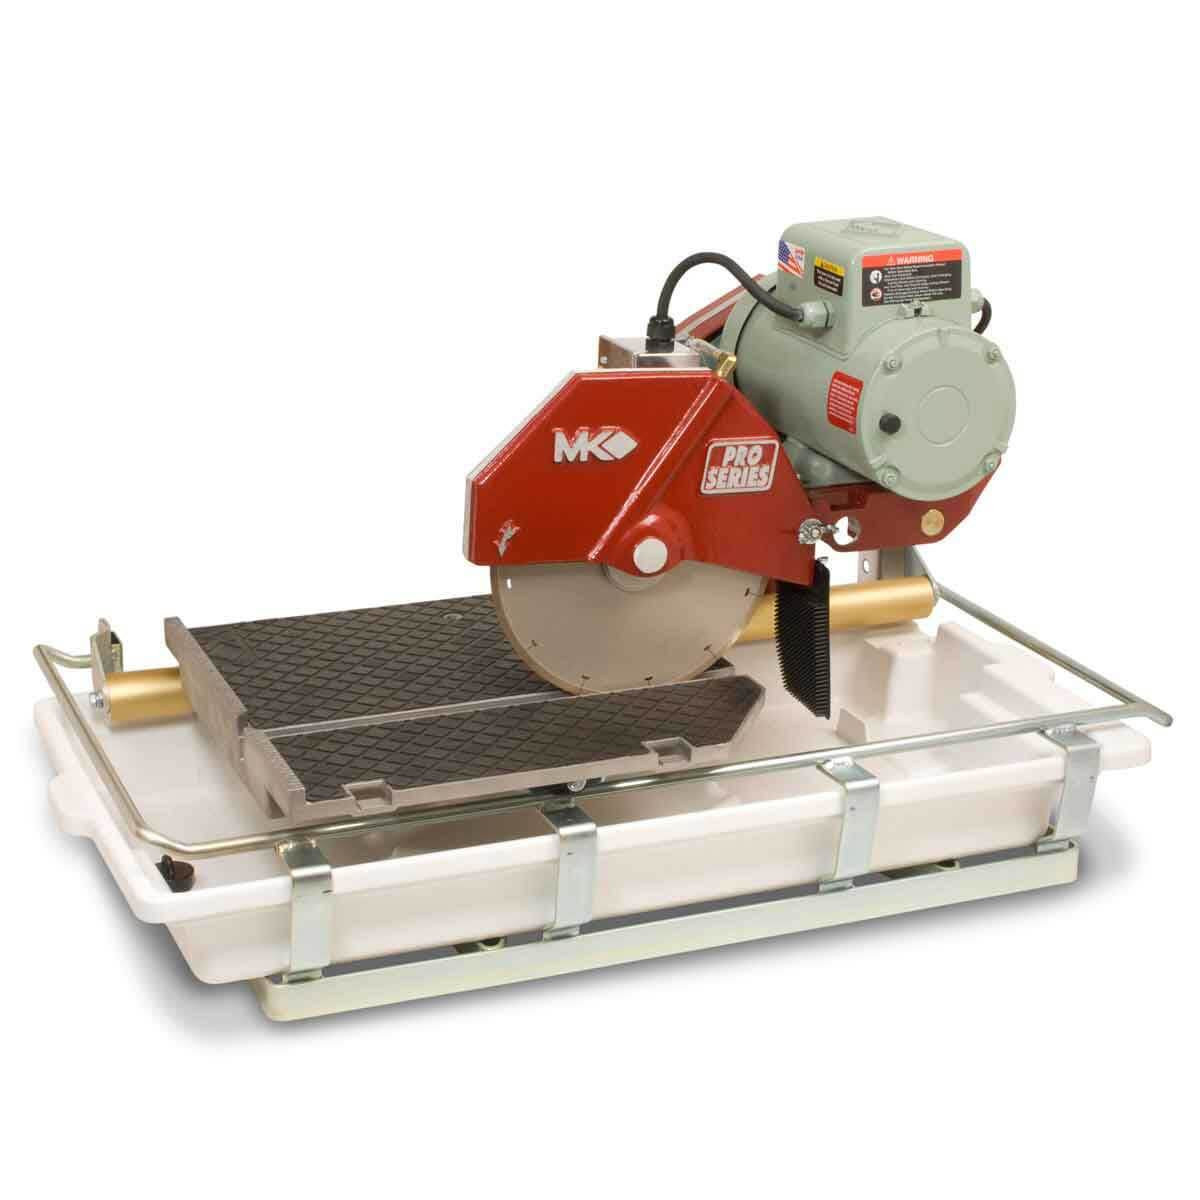 Mk 101 Pro Wet Tile Saw And Stand Contractors Direct